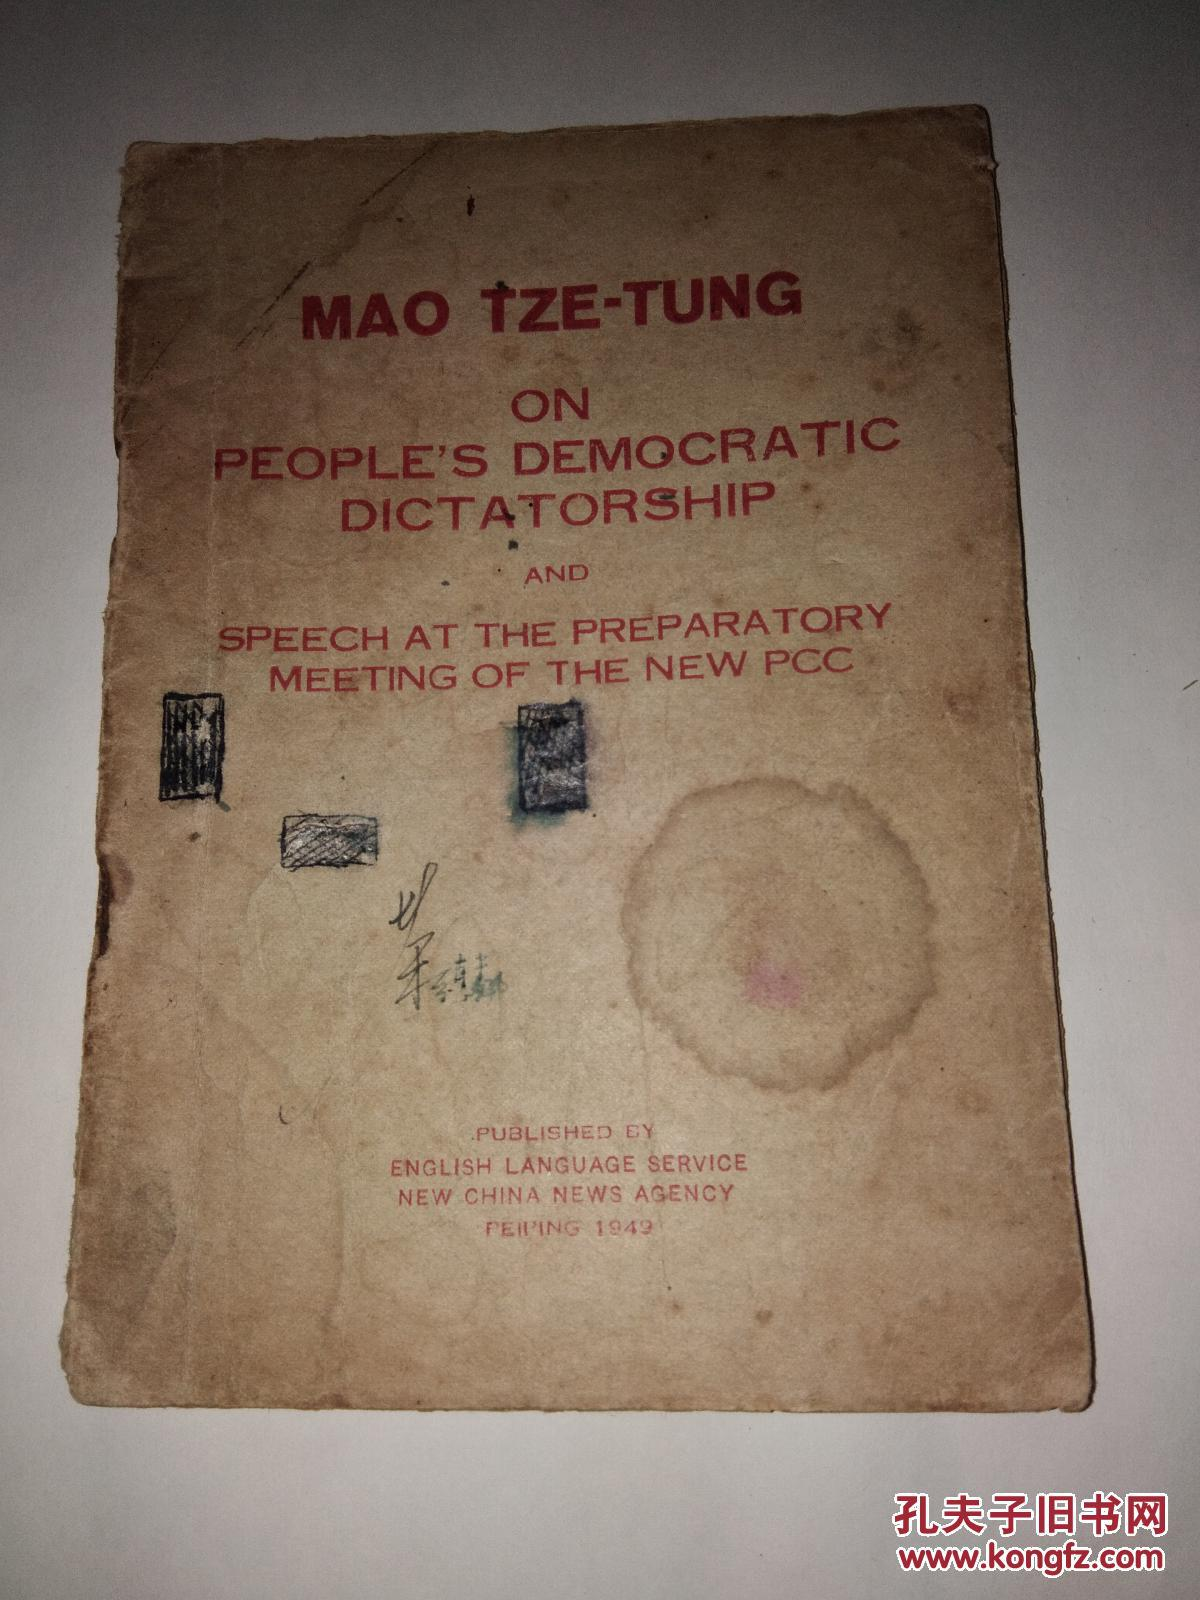 MAO TZE-TUNG ON PEOPLE\S DEMOCRATIC DICTATORSHIP